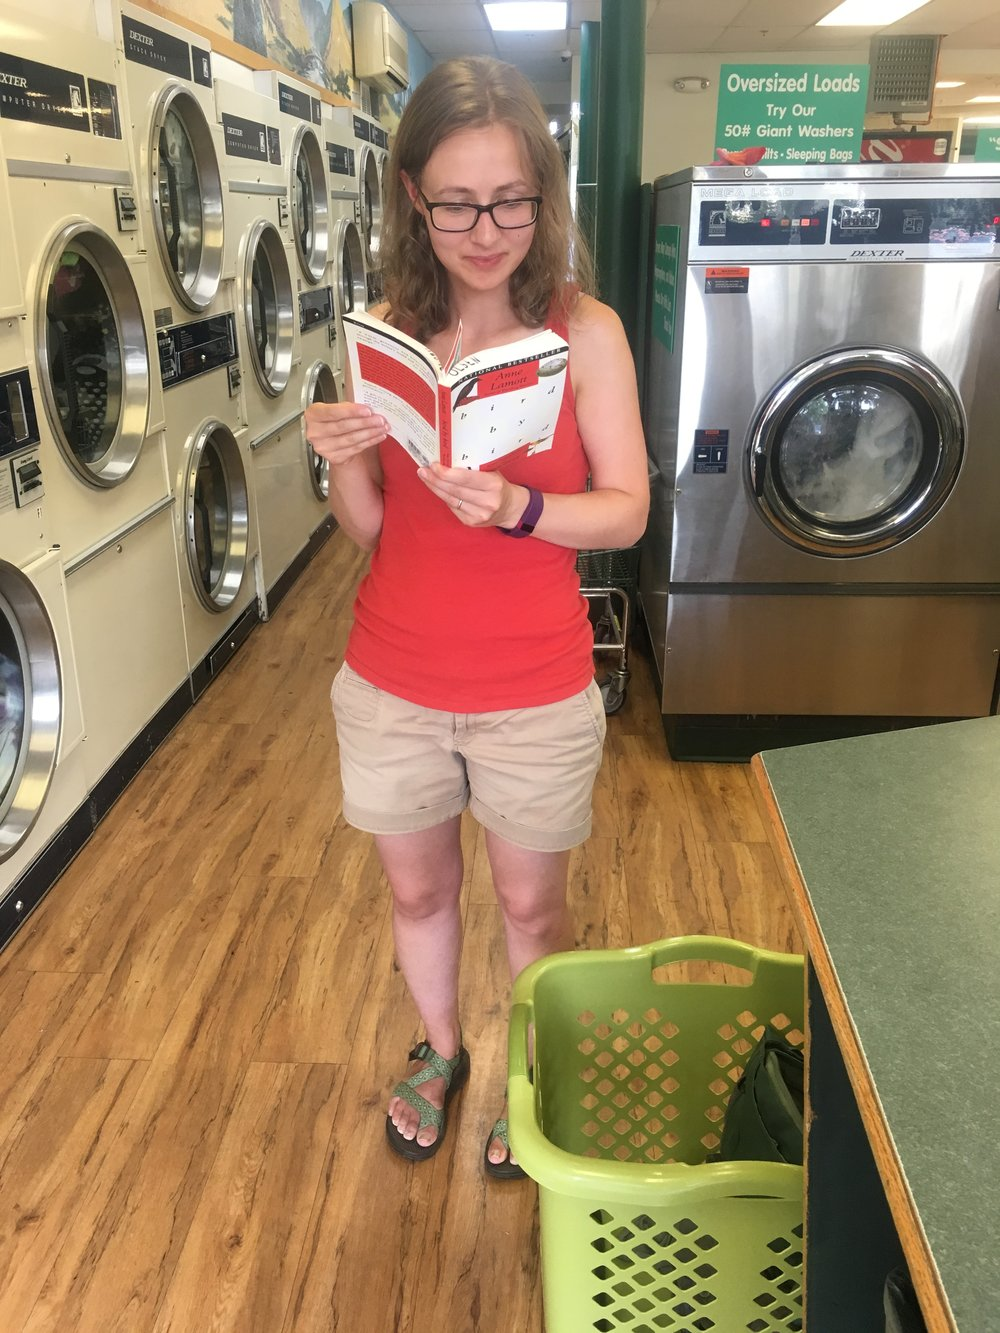 This is not a staged photo... - Ashley was standing up in front of the bank of dryers at the Green Hanger Laundromat in Missoula with a book in her hand, smiling, when I snapped this photo, asking for permission later.  (Thankfully she said yes.)  What was so compelling she couldn't put it down during her dryer's last three minutes?  Bird by Bird, by Anne Lamott.